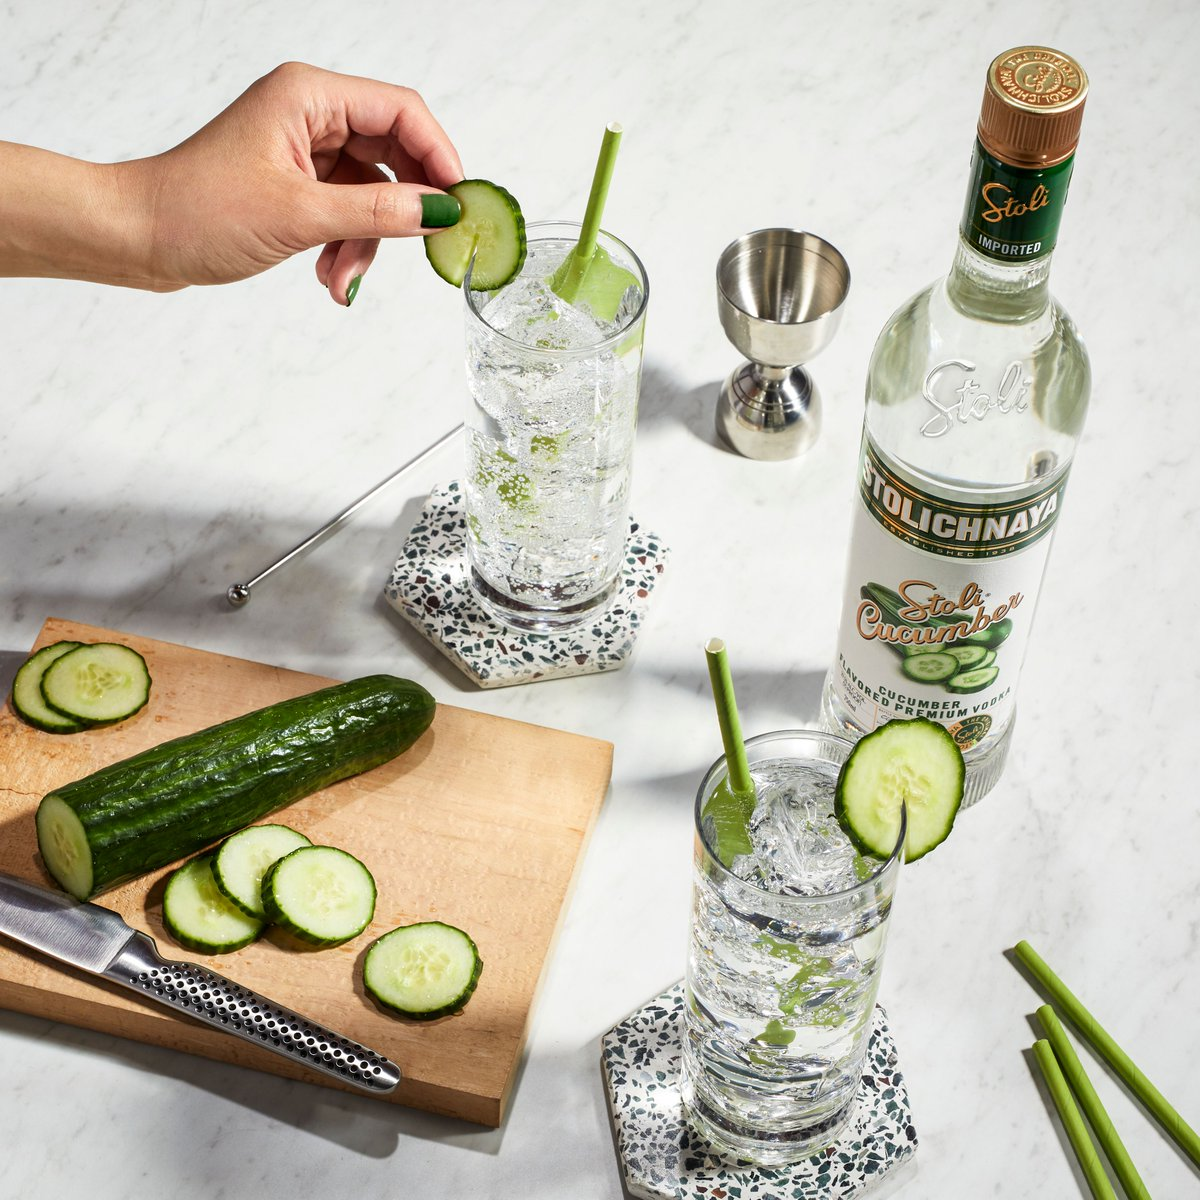 Too cuke to handle? No way, only a Stoli Cucumber and soda is bursting with this much savory flavor. https://t.co/SzyiOraLwD